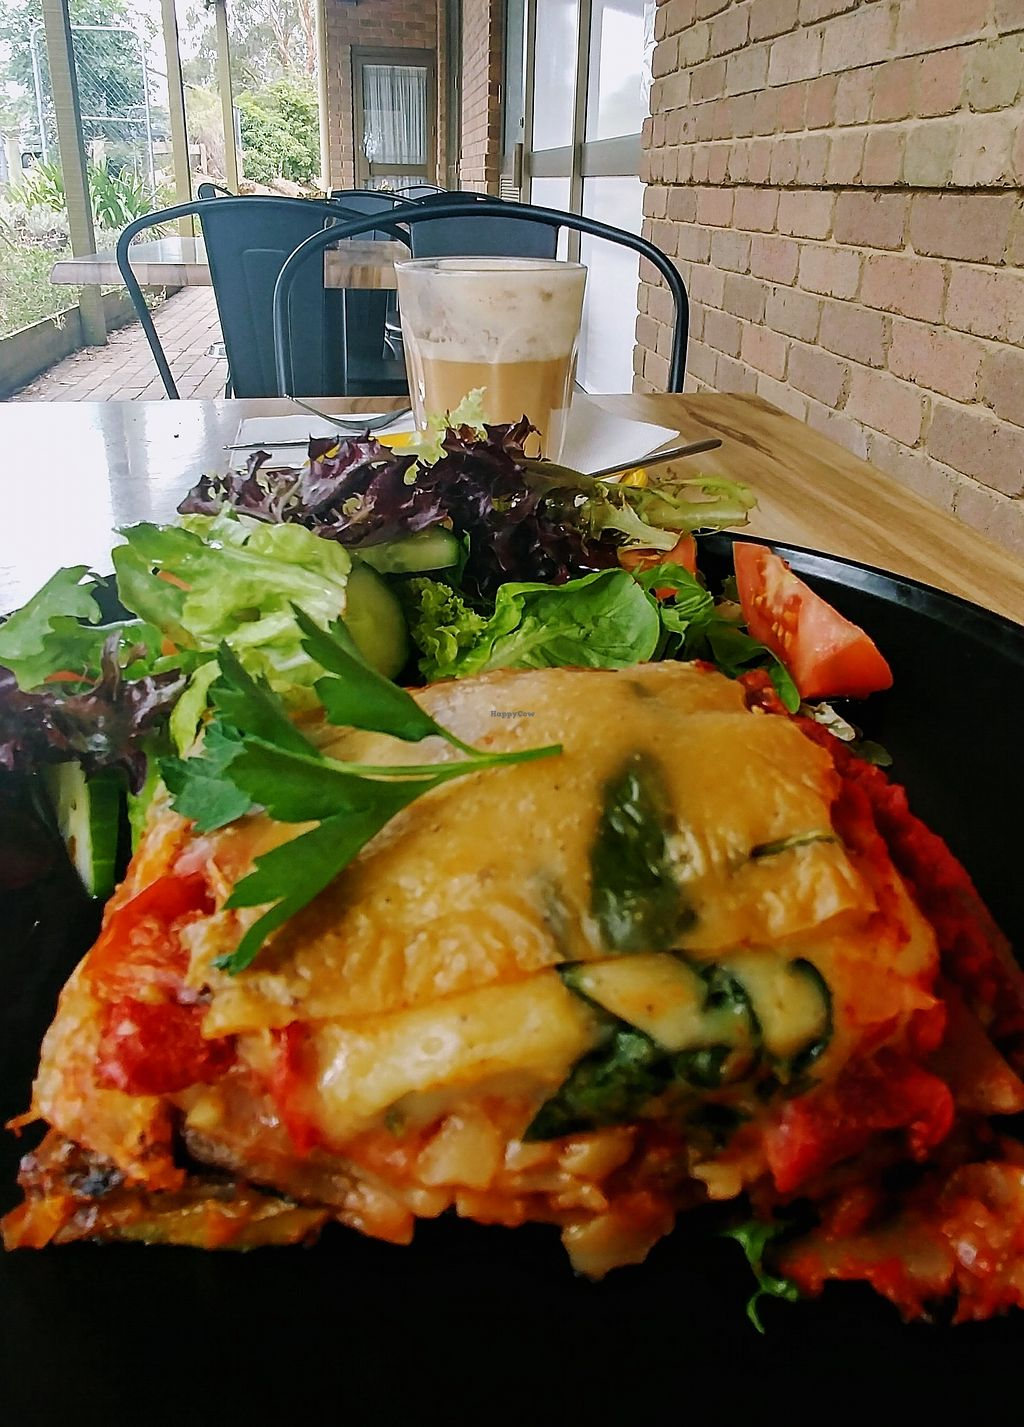 """Photo of Boots & Barley  by <a href=""""/members/profile/karlaess"""">karlaess</a> <br/>Vegan lasagne <br/> December 31, 2017  - <a href='/contact/abuse/image/91000/341294'>Report</a>"""